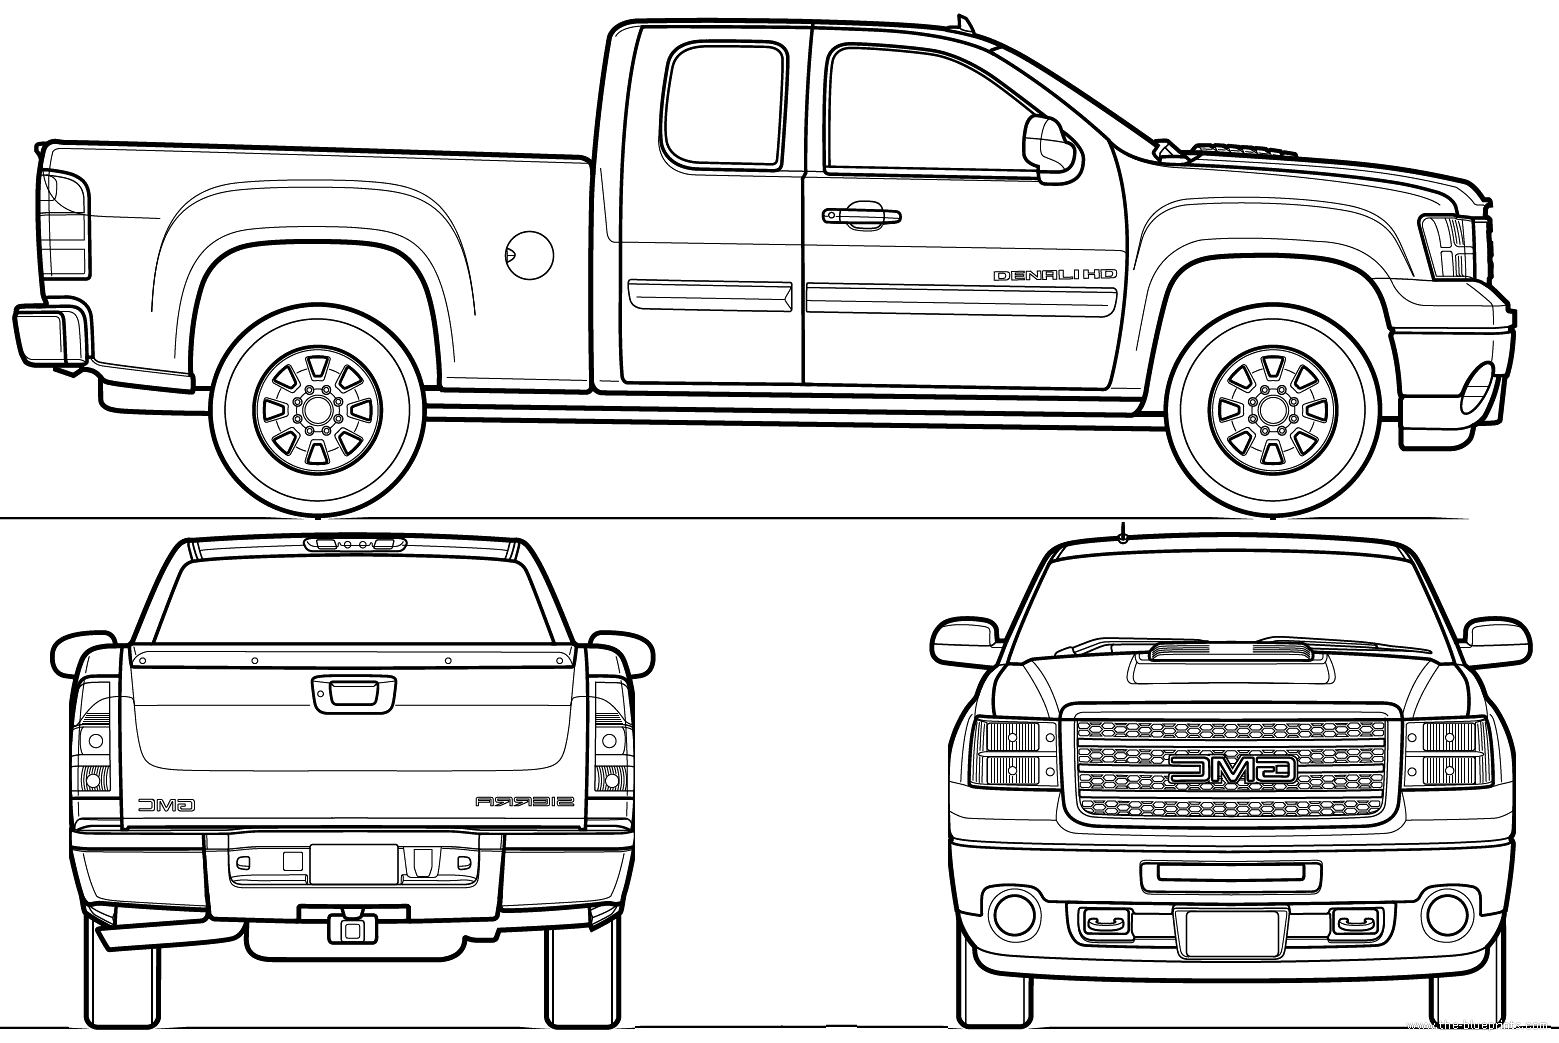 2 furthermore Ford F250 Lifted 2014 in addition 1998 Gmc Sierra Pickup Truck Blueprints furthermore 1058 Orf also 2004 Chevy Malibu Coolant Temperature Sensor Location. on lifted dodge ram